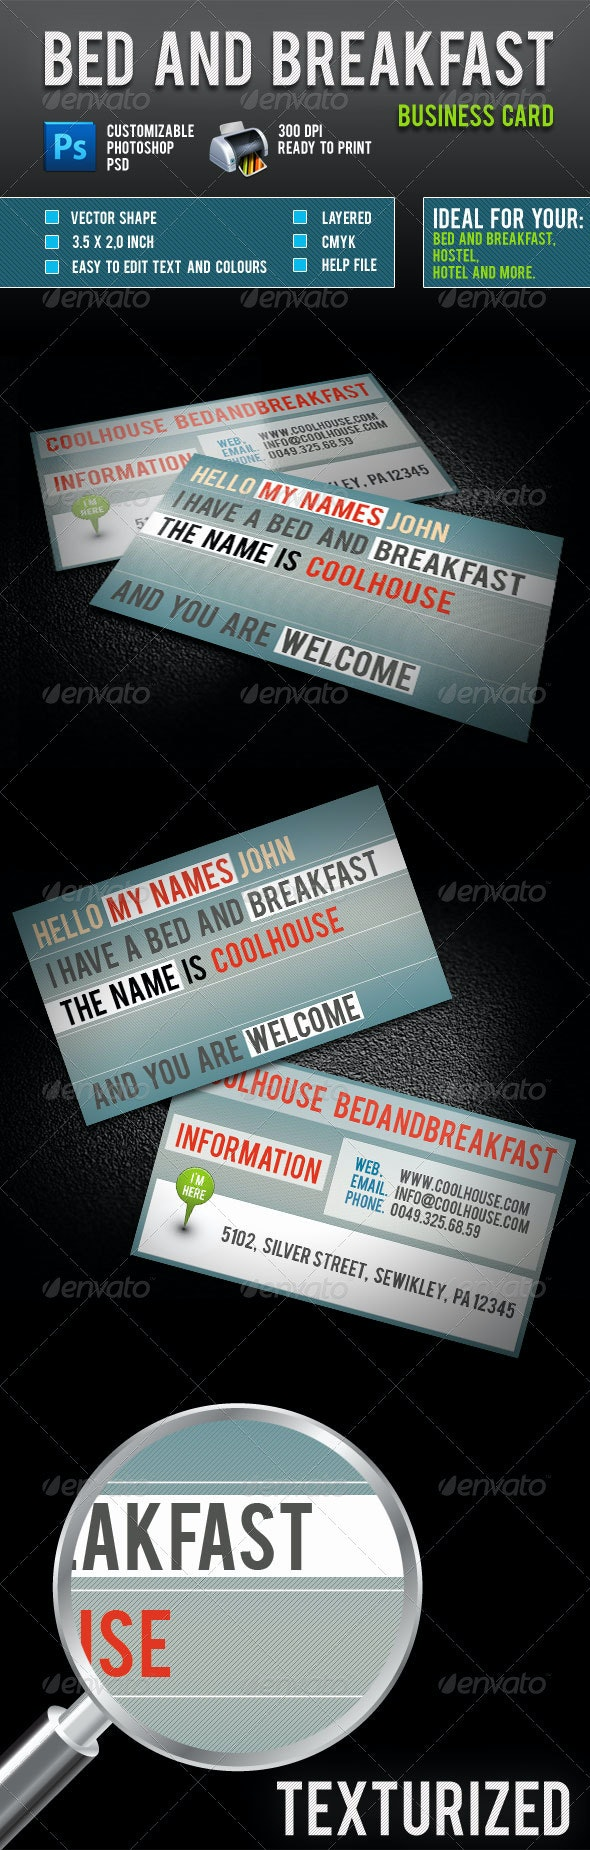 Bed And Breakfast Business Card - Creative Business Cards